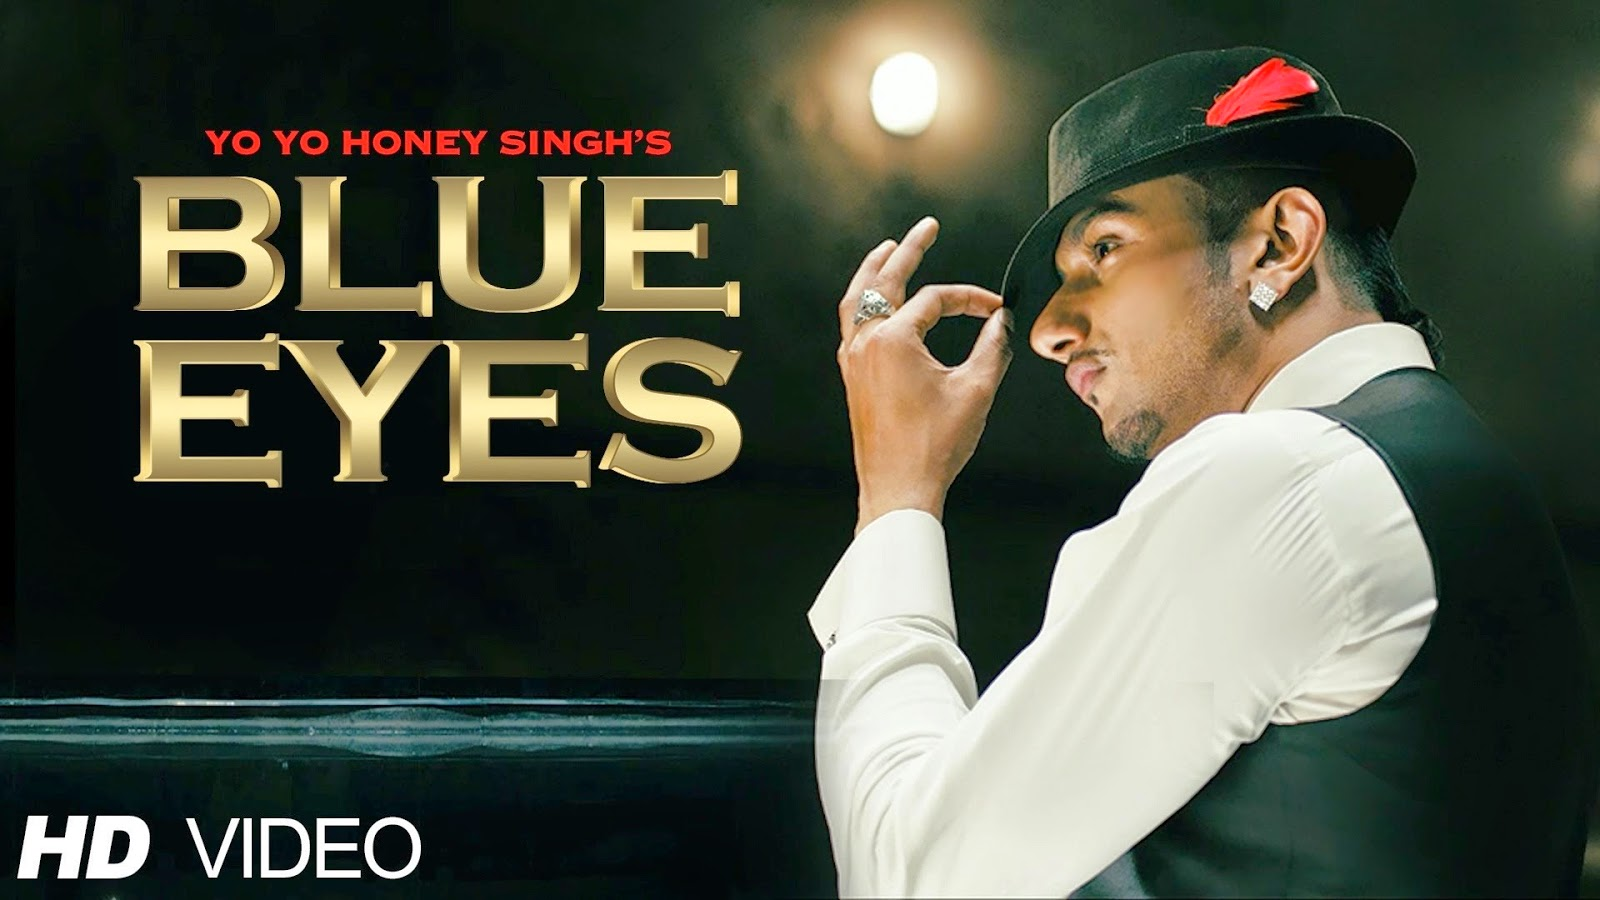 lyrics of honey singh Choot honey singh lyrics by honey singh - 2 lyrics explanations and song meanings kenday pechayian pindaan ney teree mari / saaday lun ney we khichee ey tyaari.